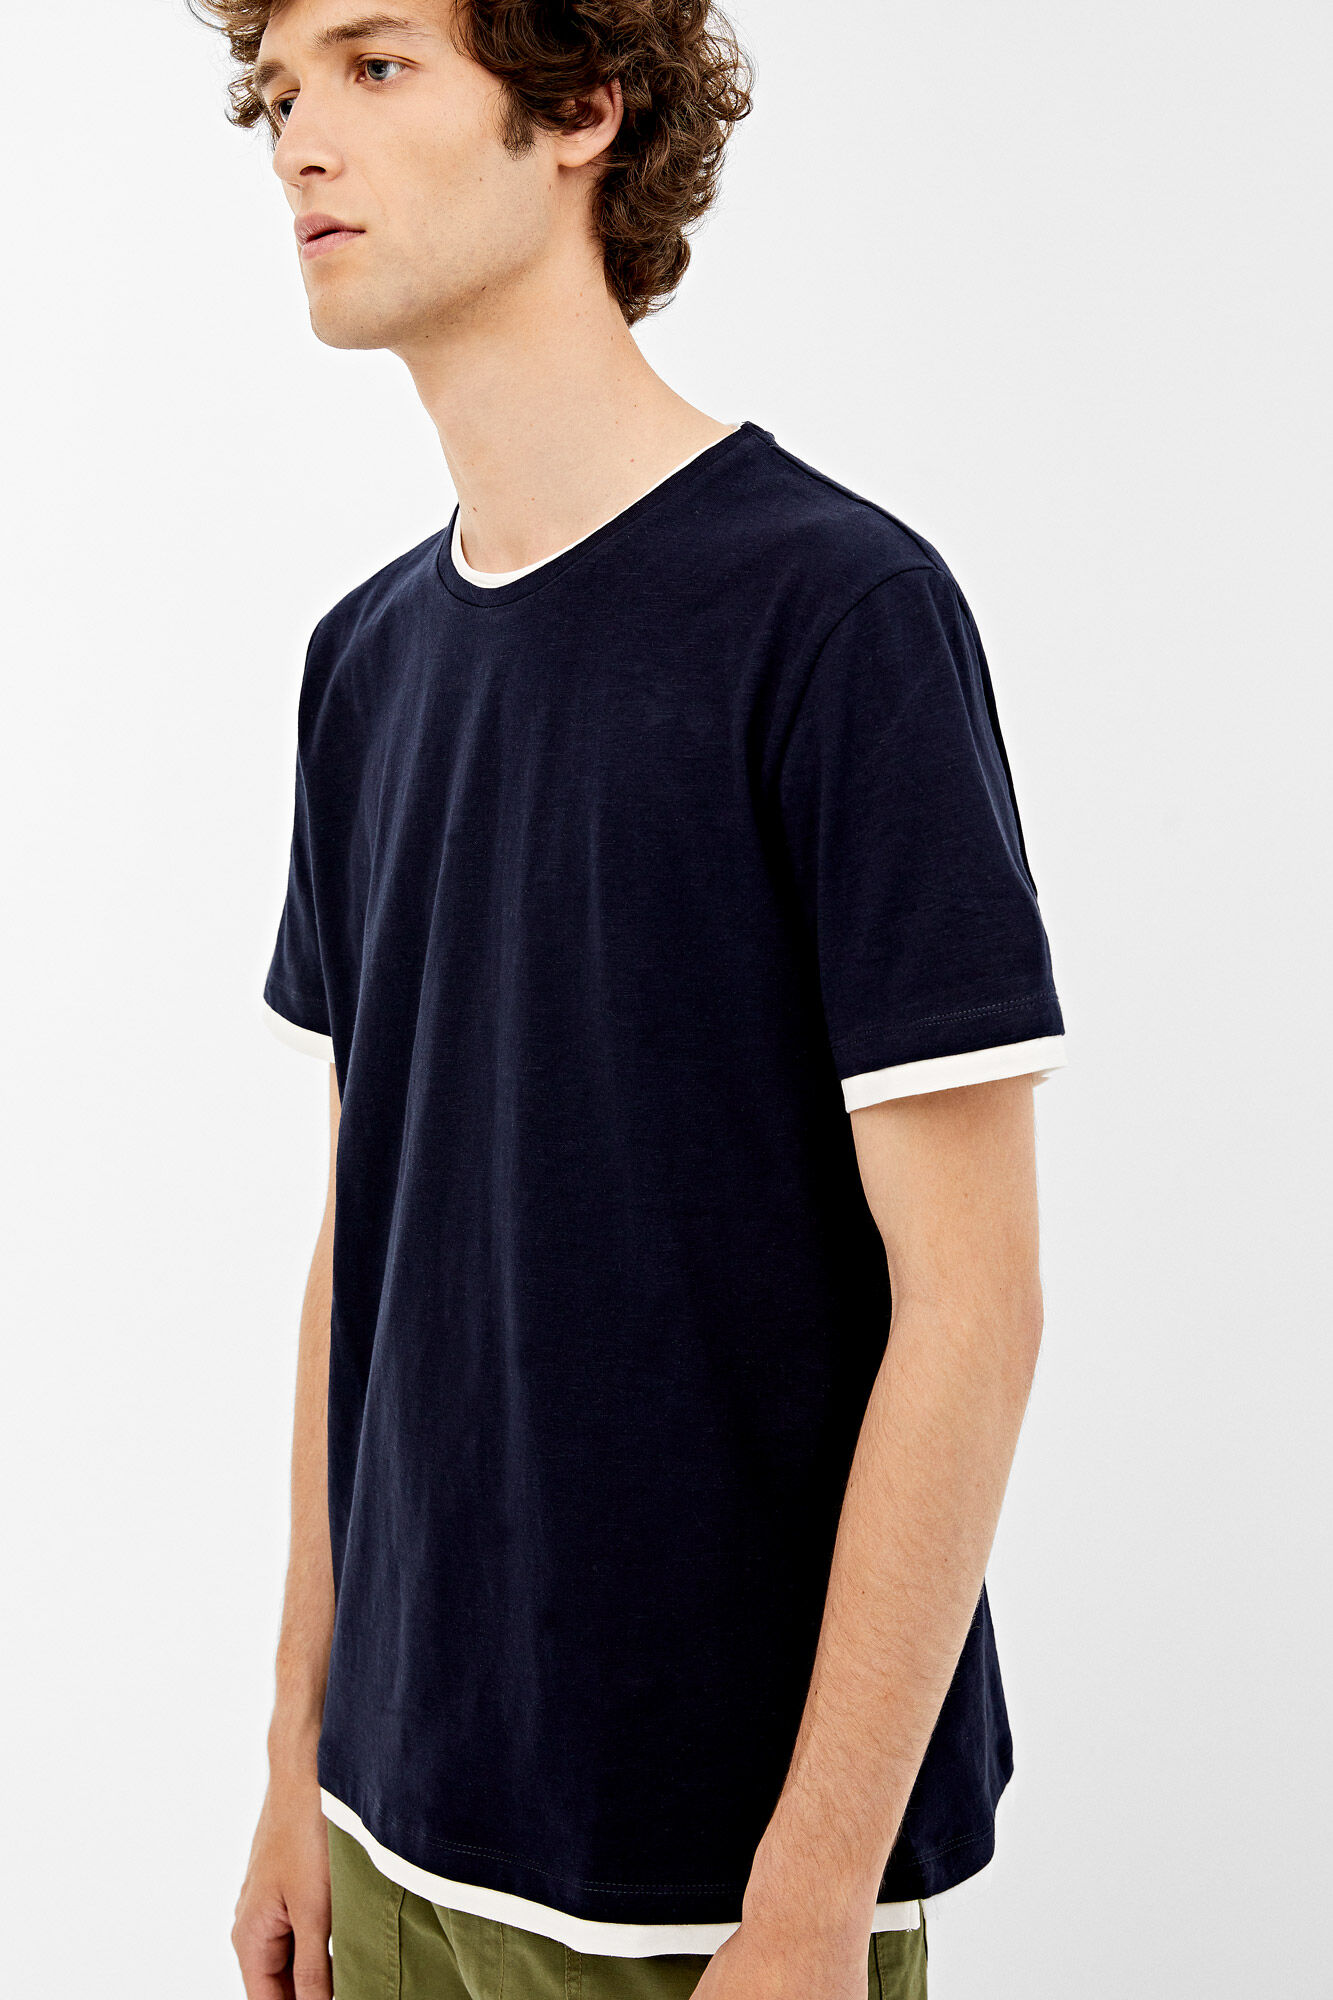 6fbb4c782e Contrasting superimposed effect t-shirt